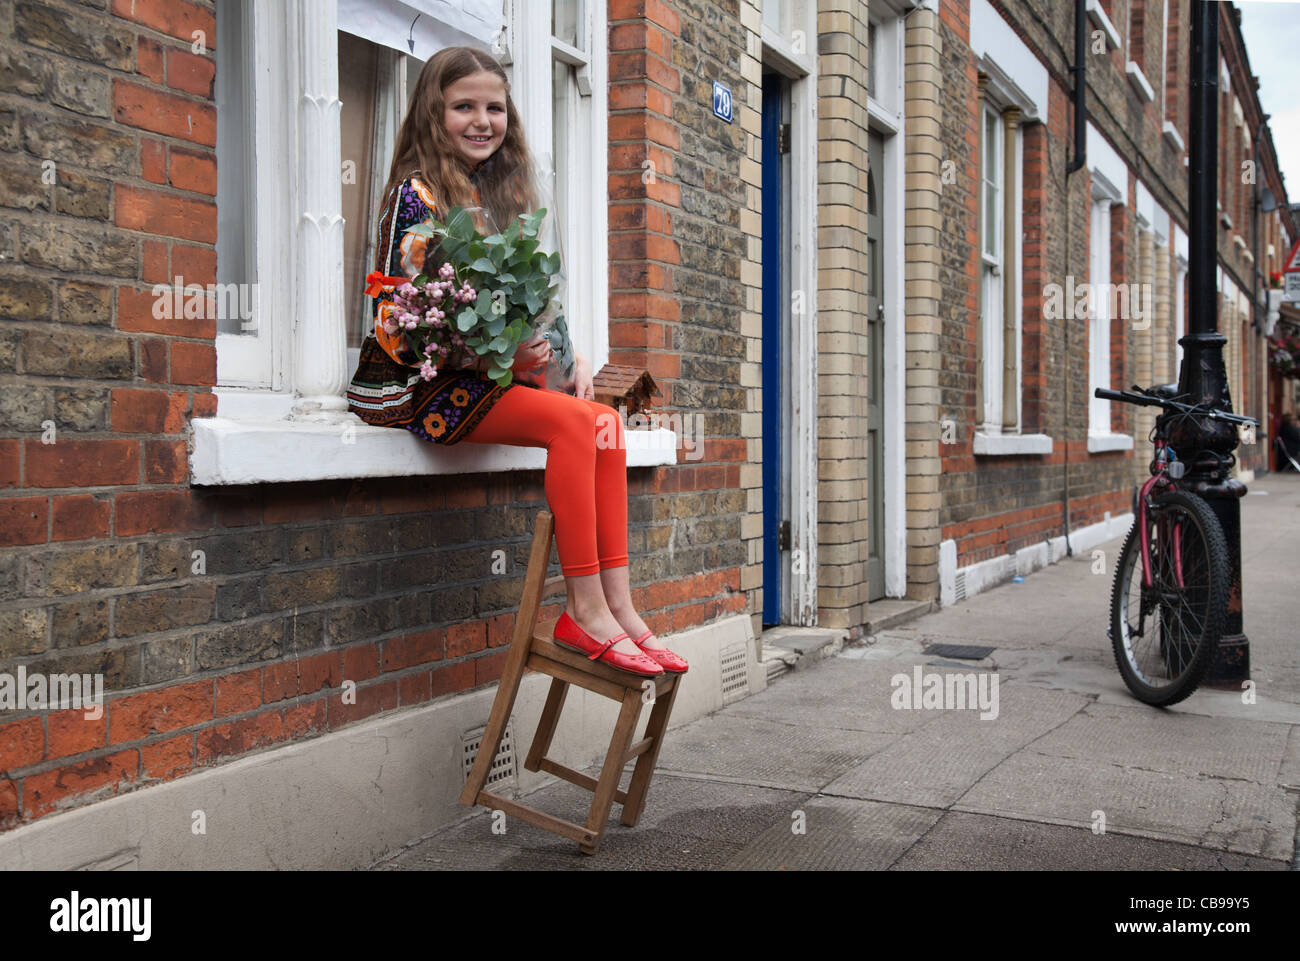 A girl sitting in a windowsill holding a bouquet, Columbia Market, London, UK - Stock Image